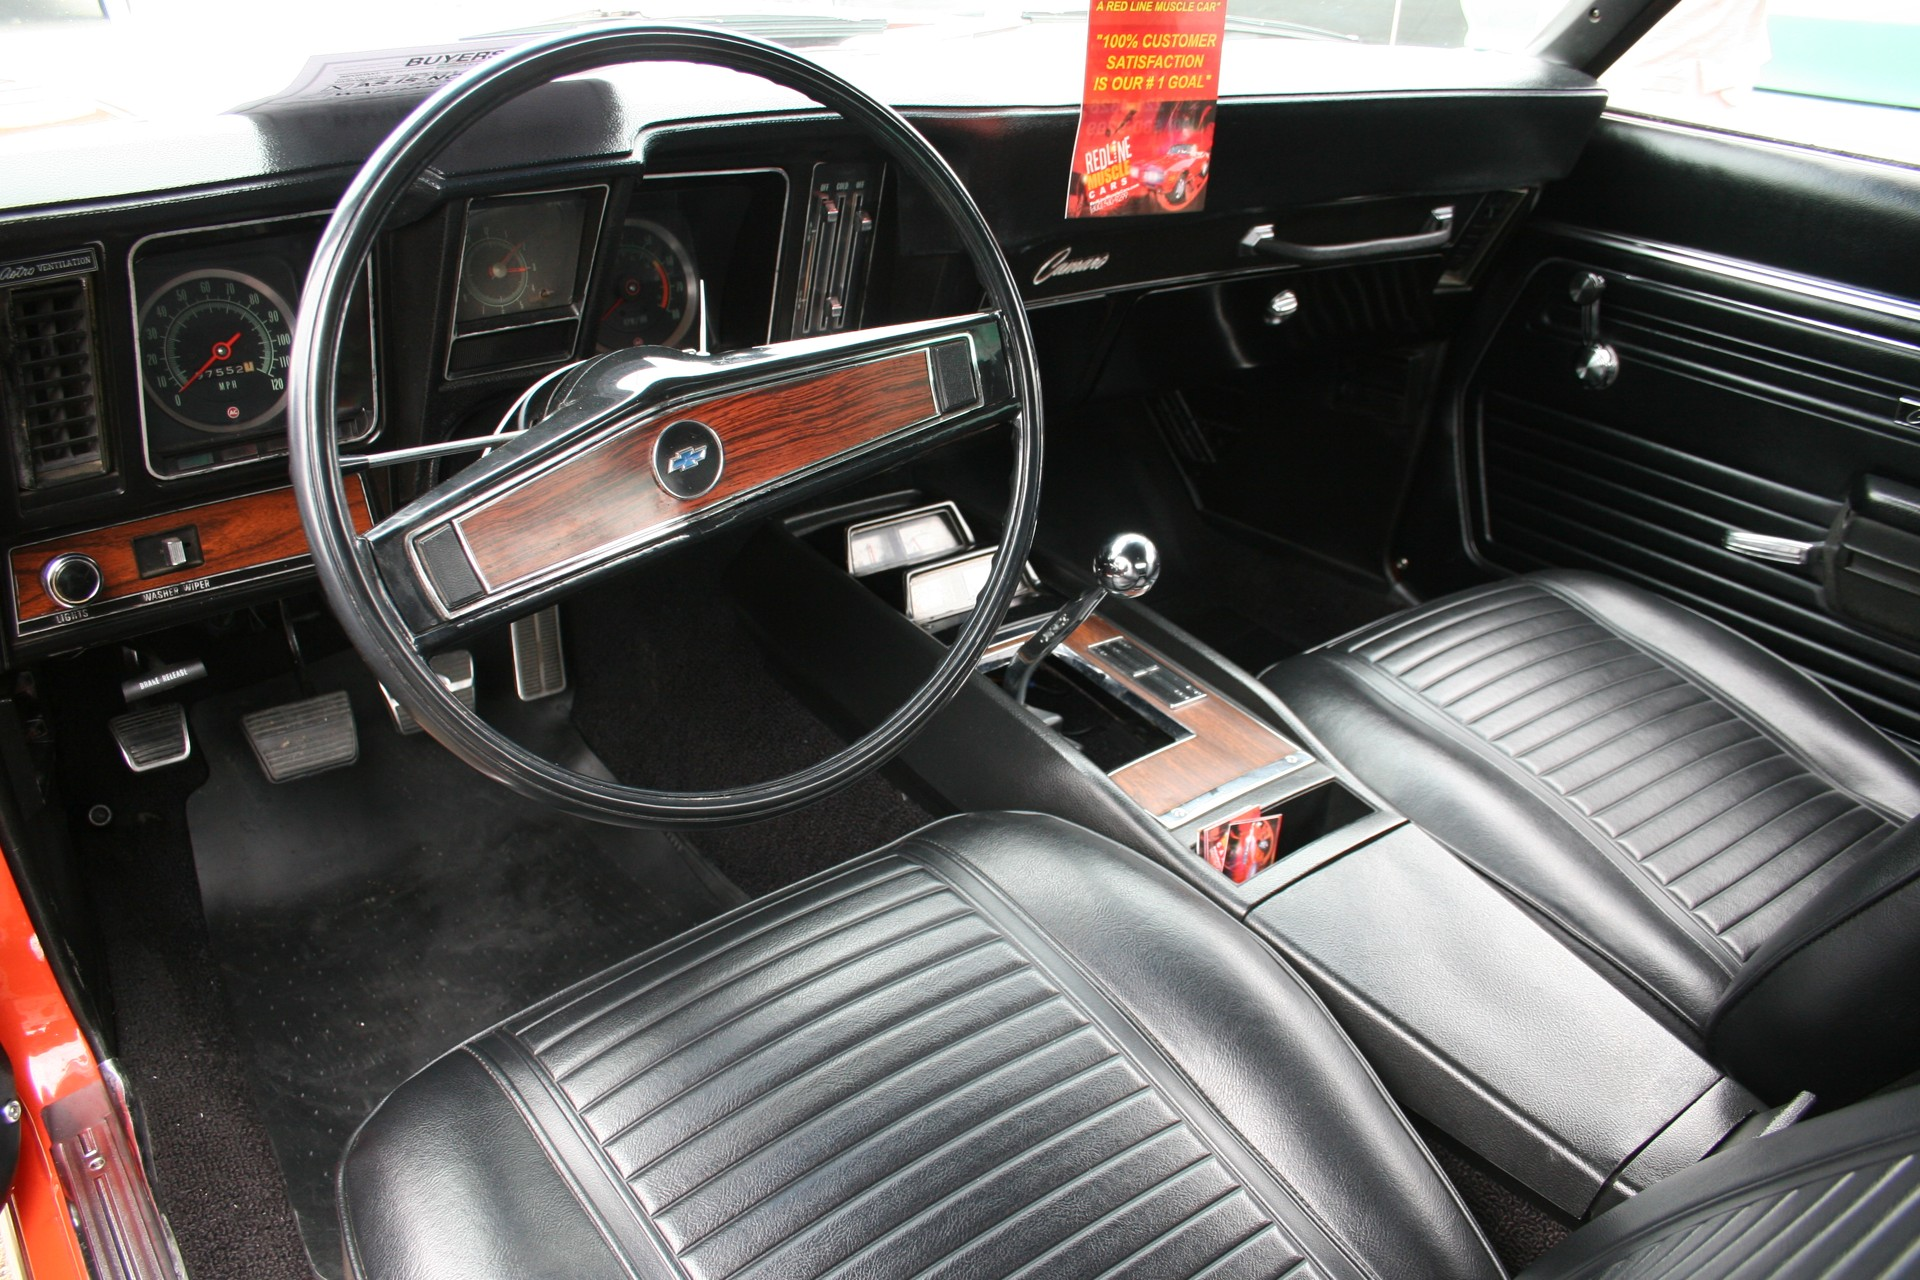 7th Image of a 1969 CHEVROLET X77 Z28